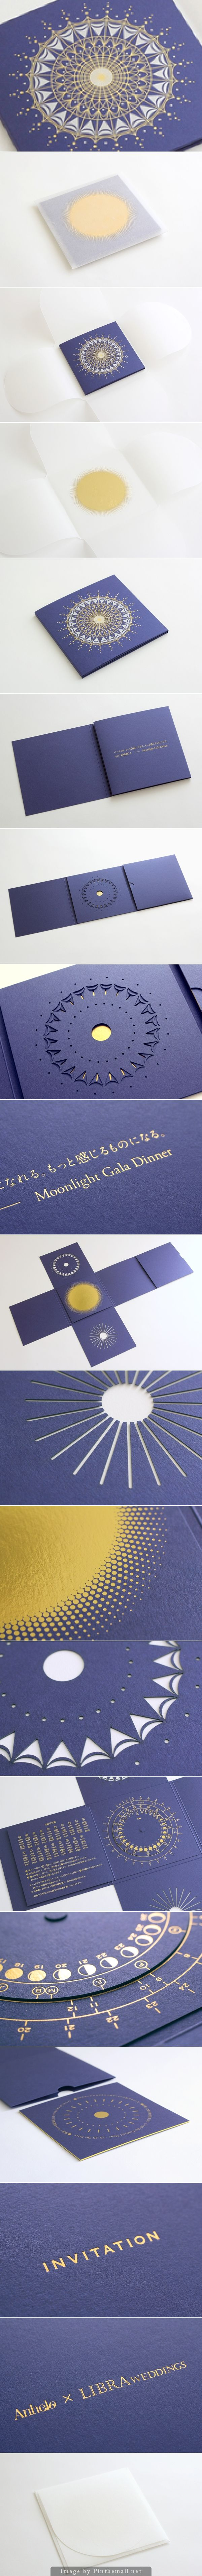 Invite me! Anhelo × LIBRA WEDDINGS the most gorgeous wedding invitation packaging curated by Packaging Diva PD created via http://www.kotohogidesign.com/2012/11/dm_mgd_01/